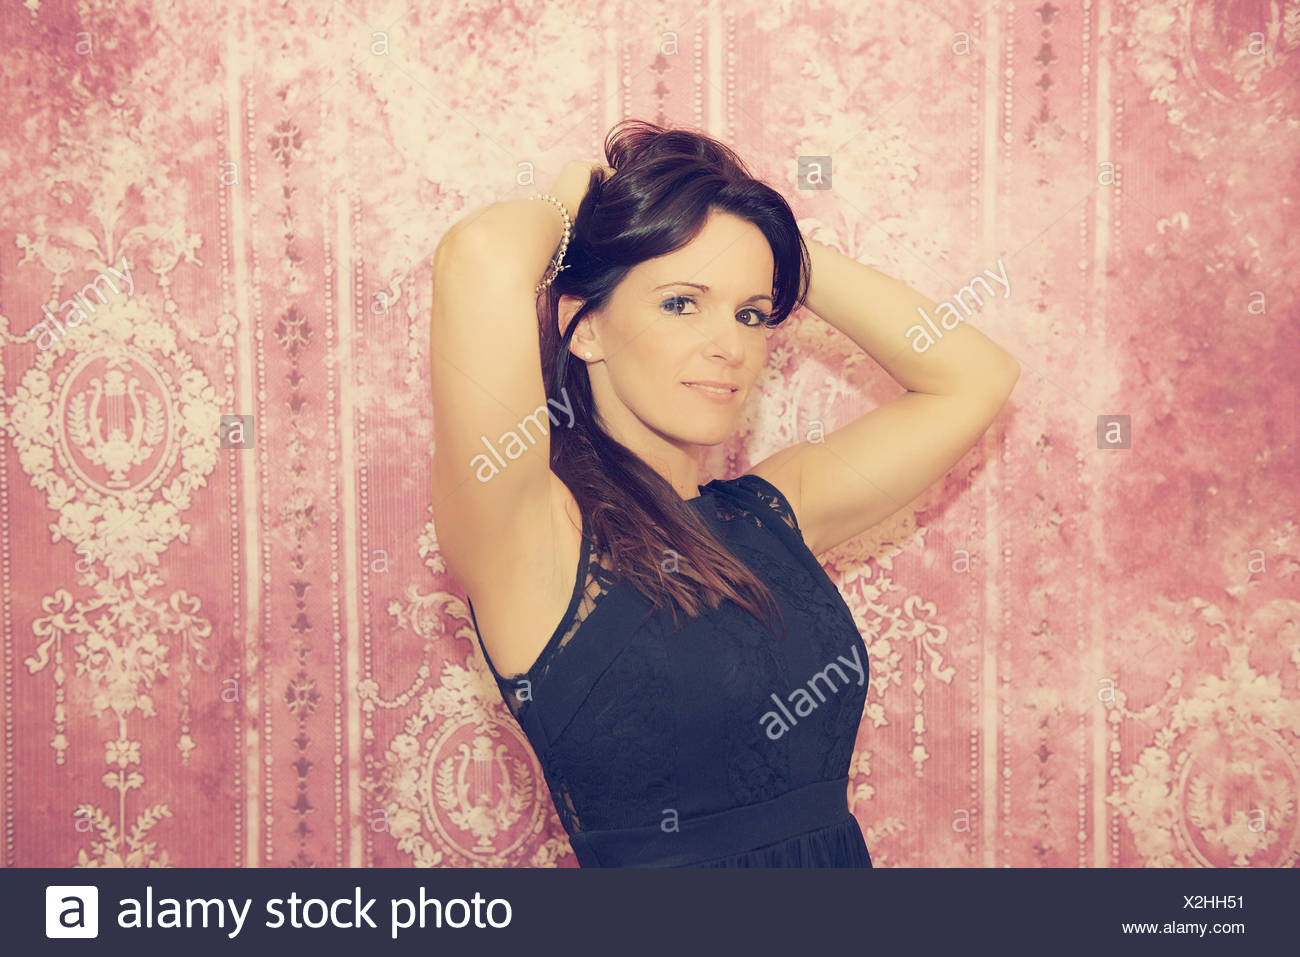 Woman with her hands behind her head - Stock Image